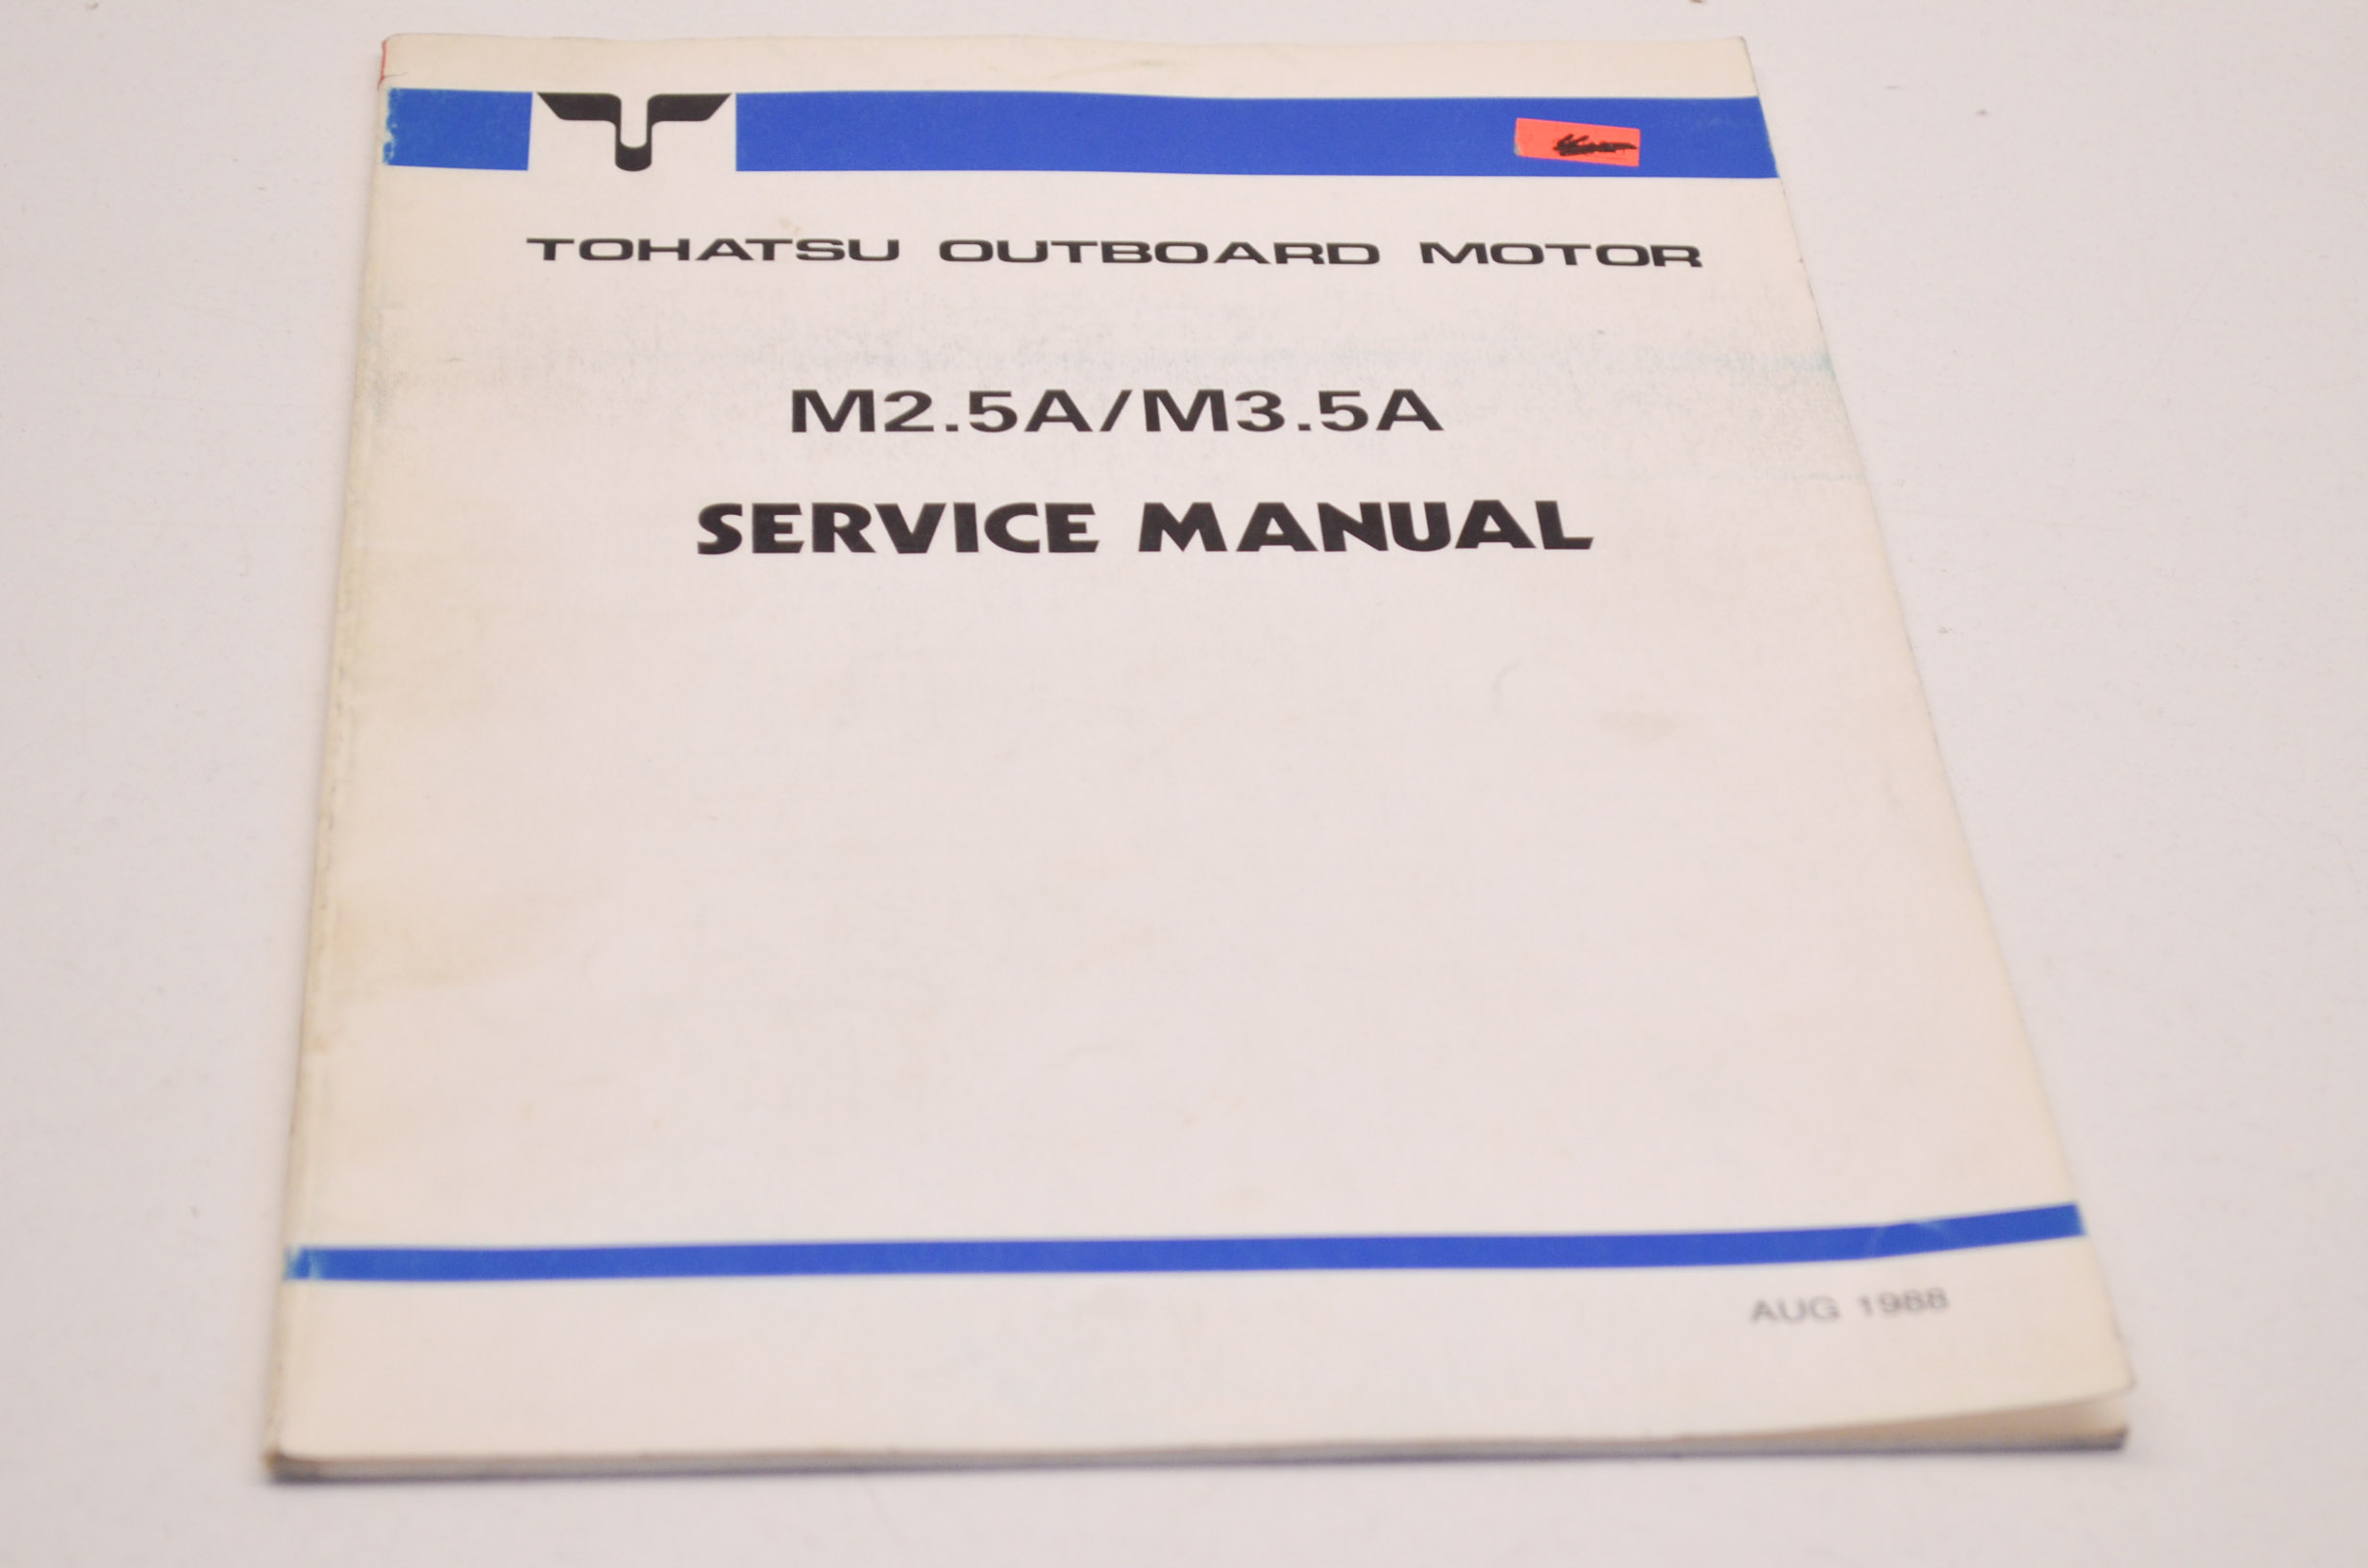 ... list catalog Array - tohatsu 003 21016 0 outboard motor service manual  m2 5a m3 5a qty 1